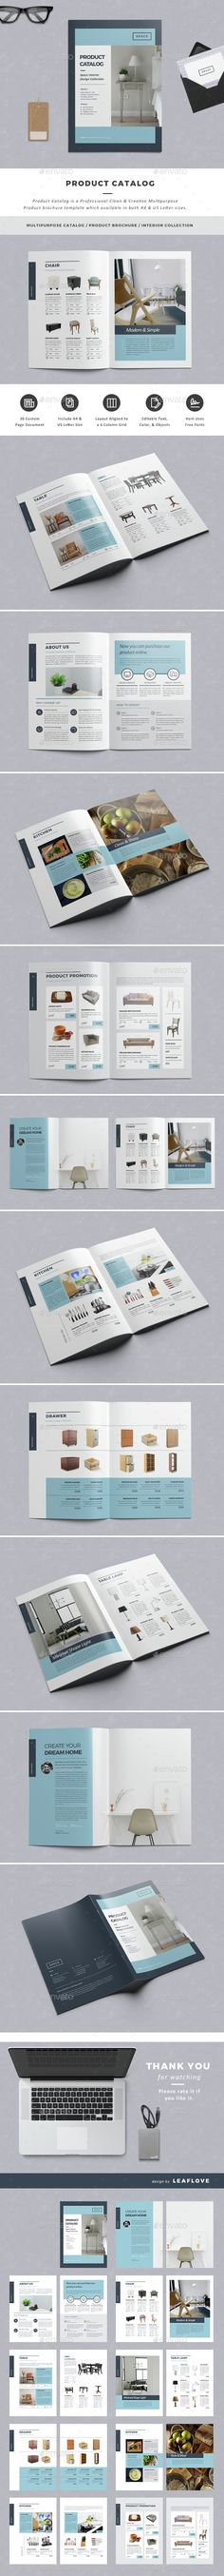 Product Catalog Template InDesign INDD. Download here: http://graphicriver.net/item/product-catalog/15253537?ref=ksioks